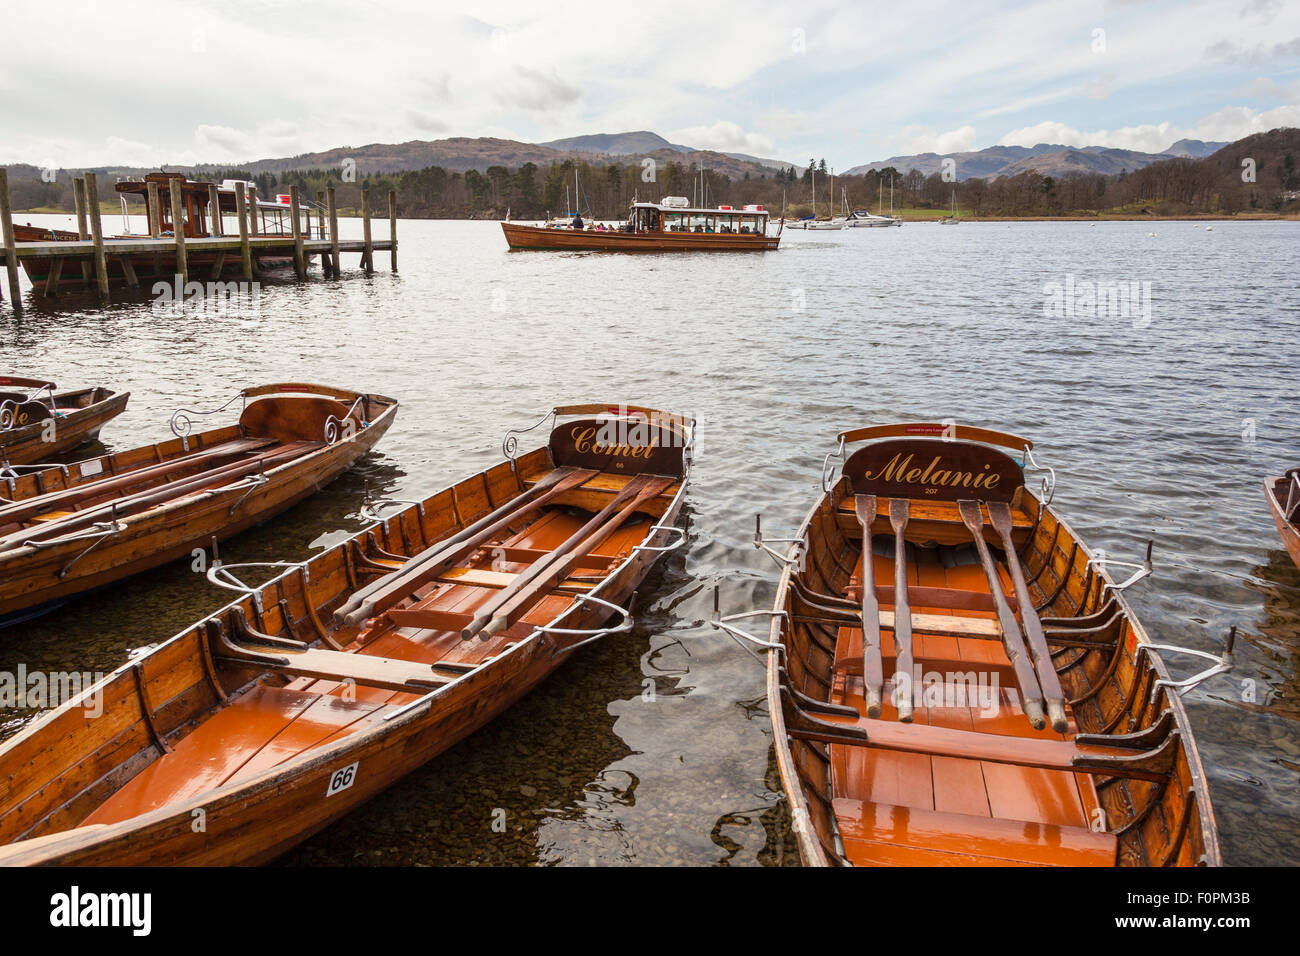 Rowing boats for hire, Lake Windermere, Ambleside, Lake District, Cumbria, England - Stock Image